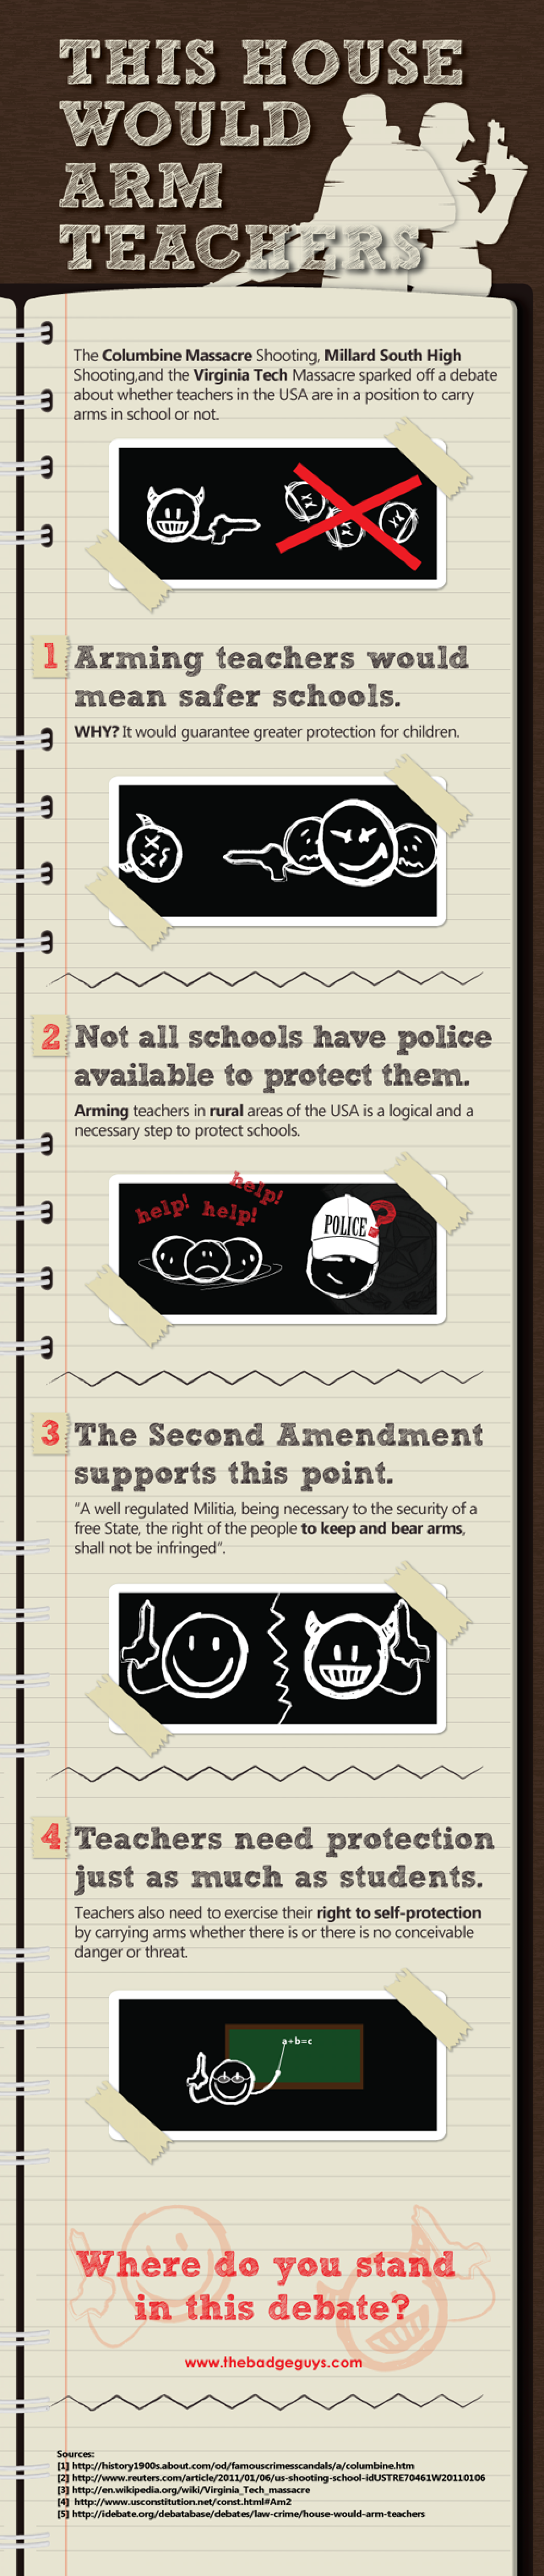 The Case For Arming Teachers on Campuses Infographic